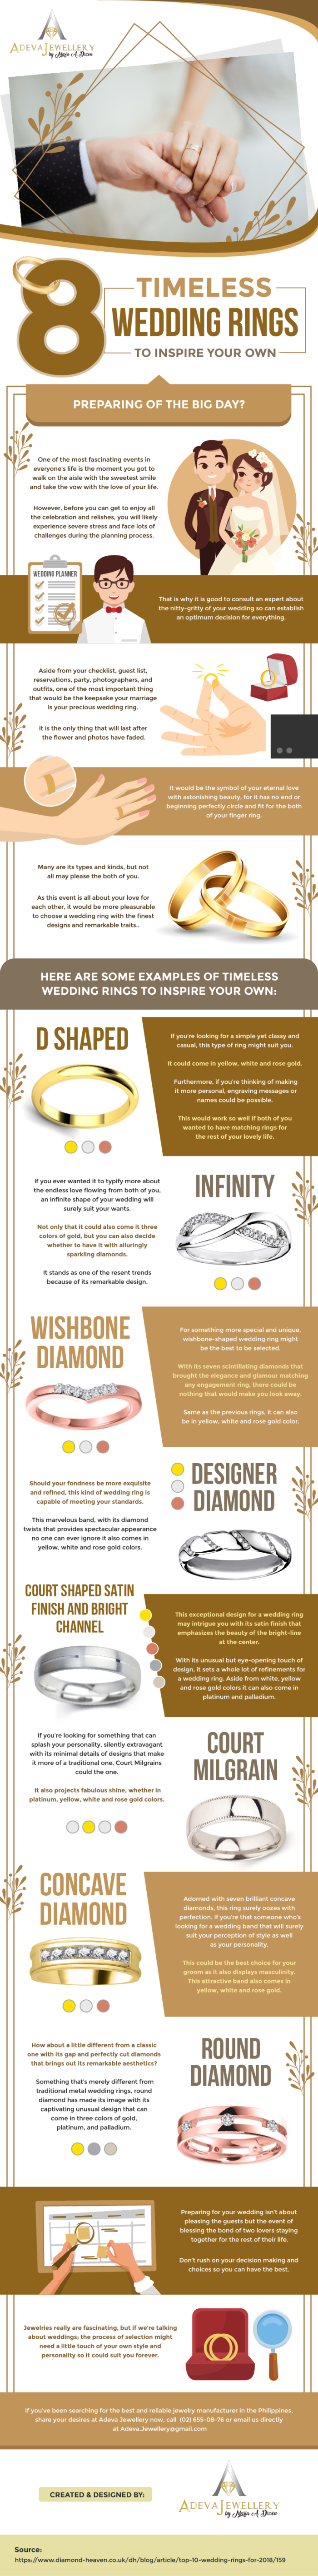 8-Timeless-Wedding-Rings-to-Inspire-Your-Own-700x5669.png